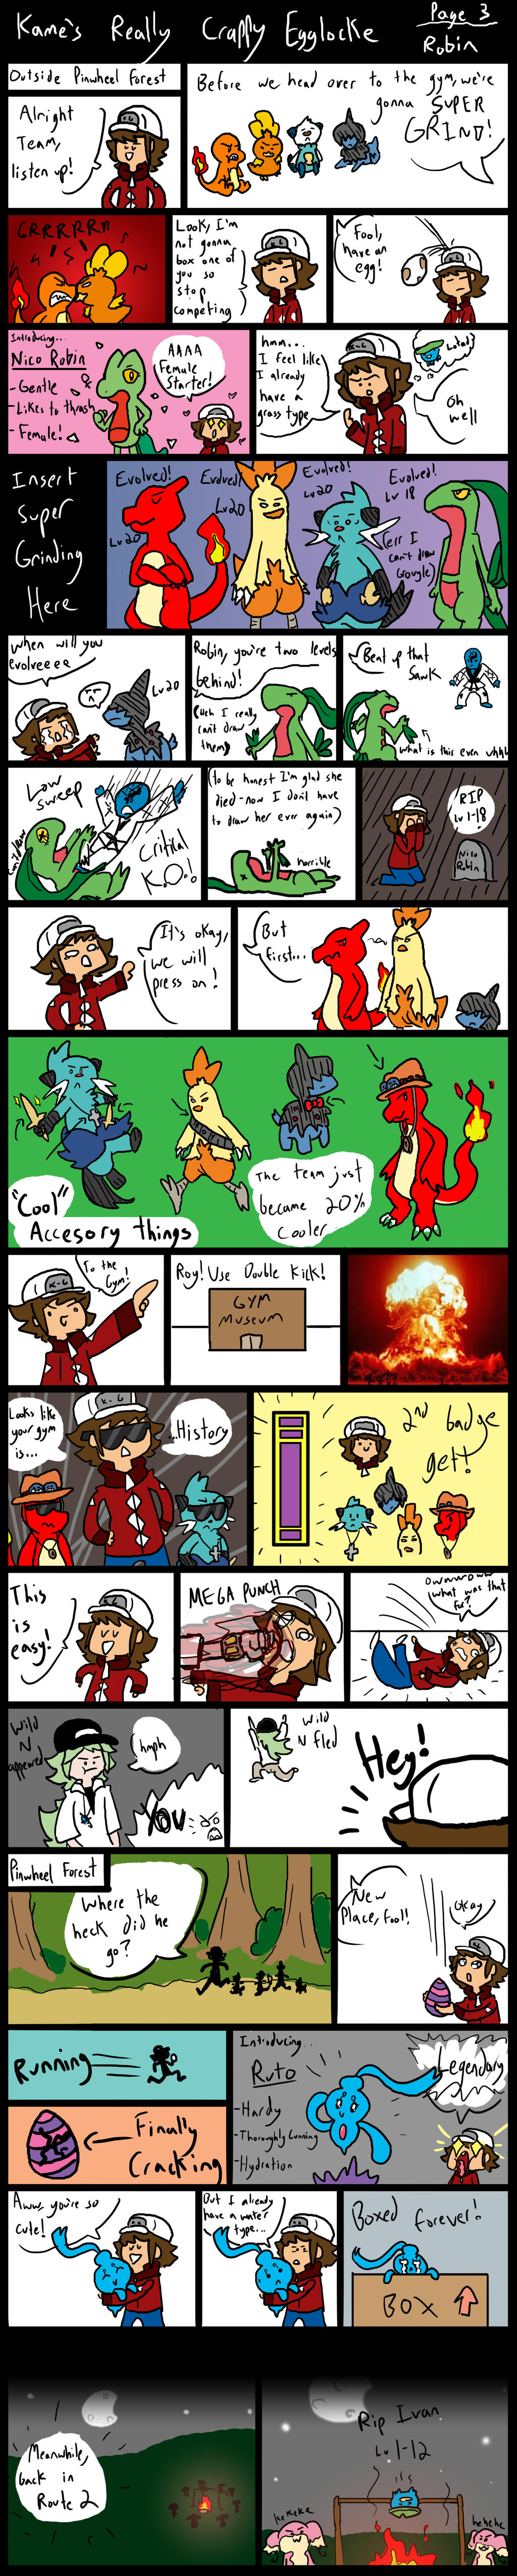 Kames Super Crappy Egglocke 3 by Kame-Ghost